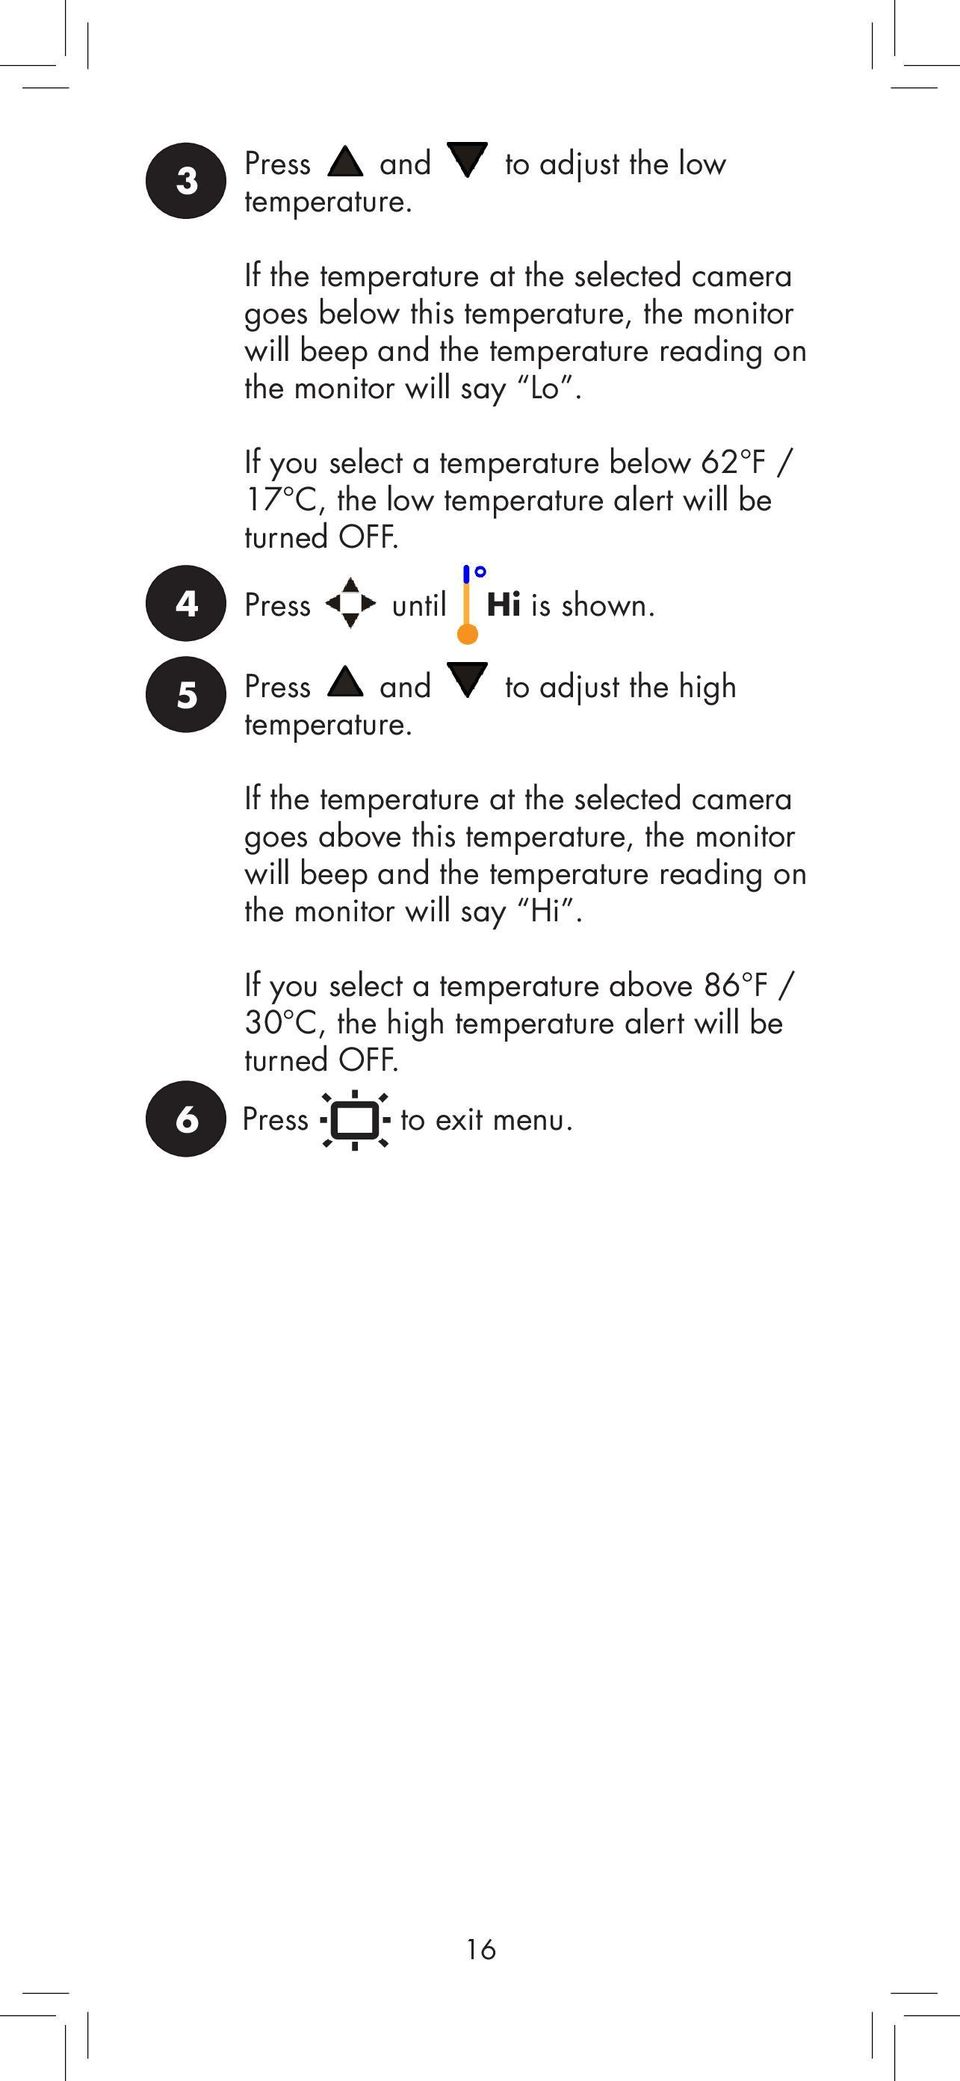 If you select a temperature below 6 F / 7 C, the low temperature alert will be turned OFF. 4 5 Press until Hi is shown.